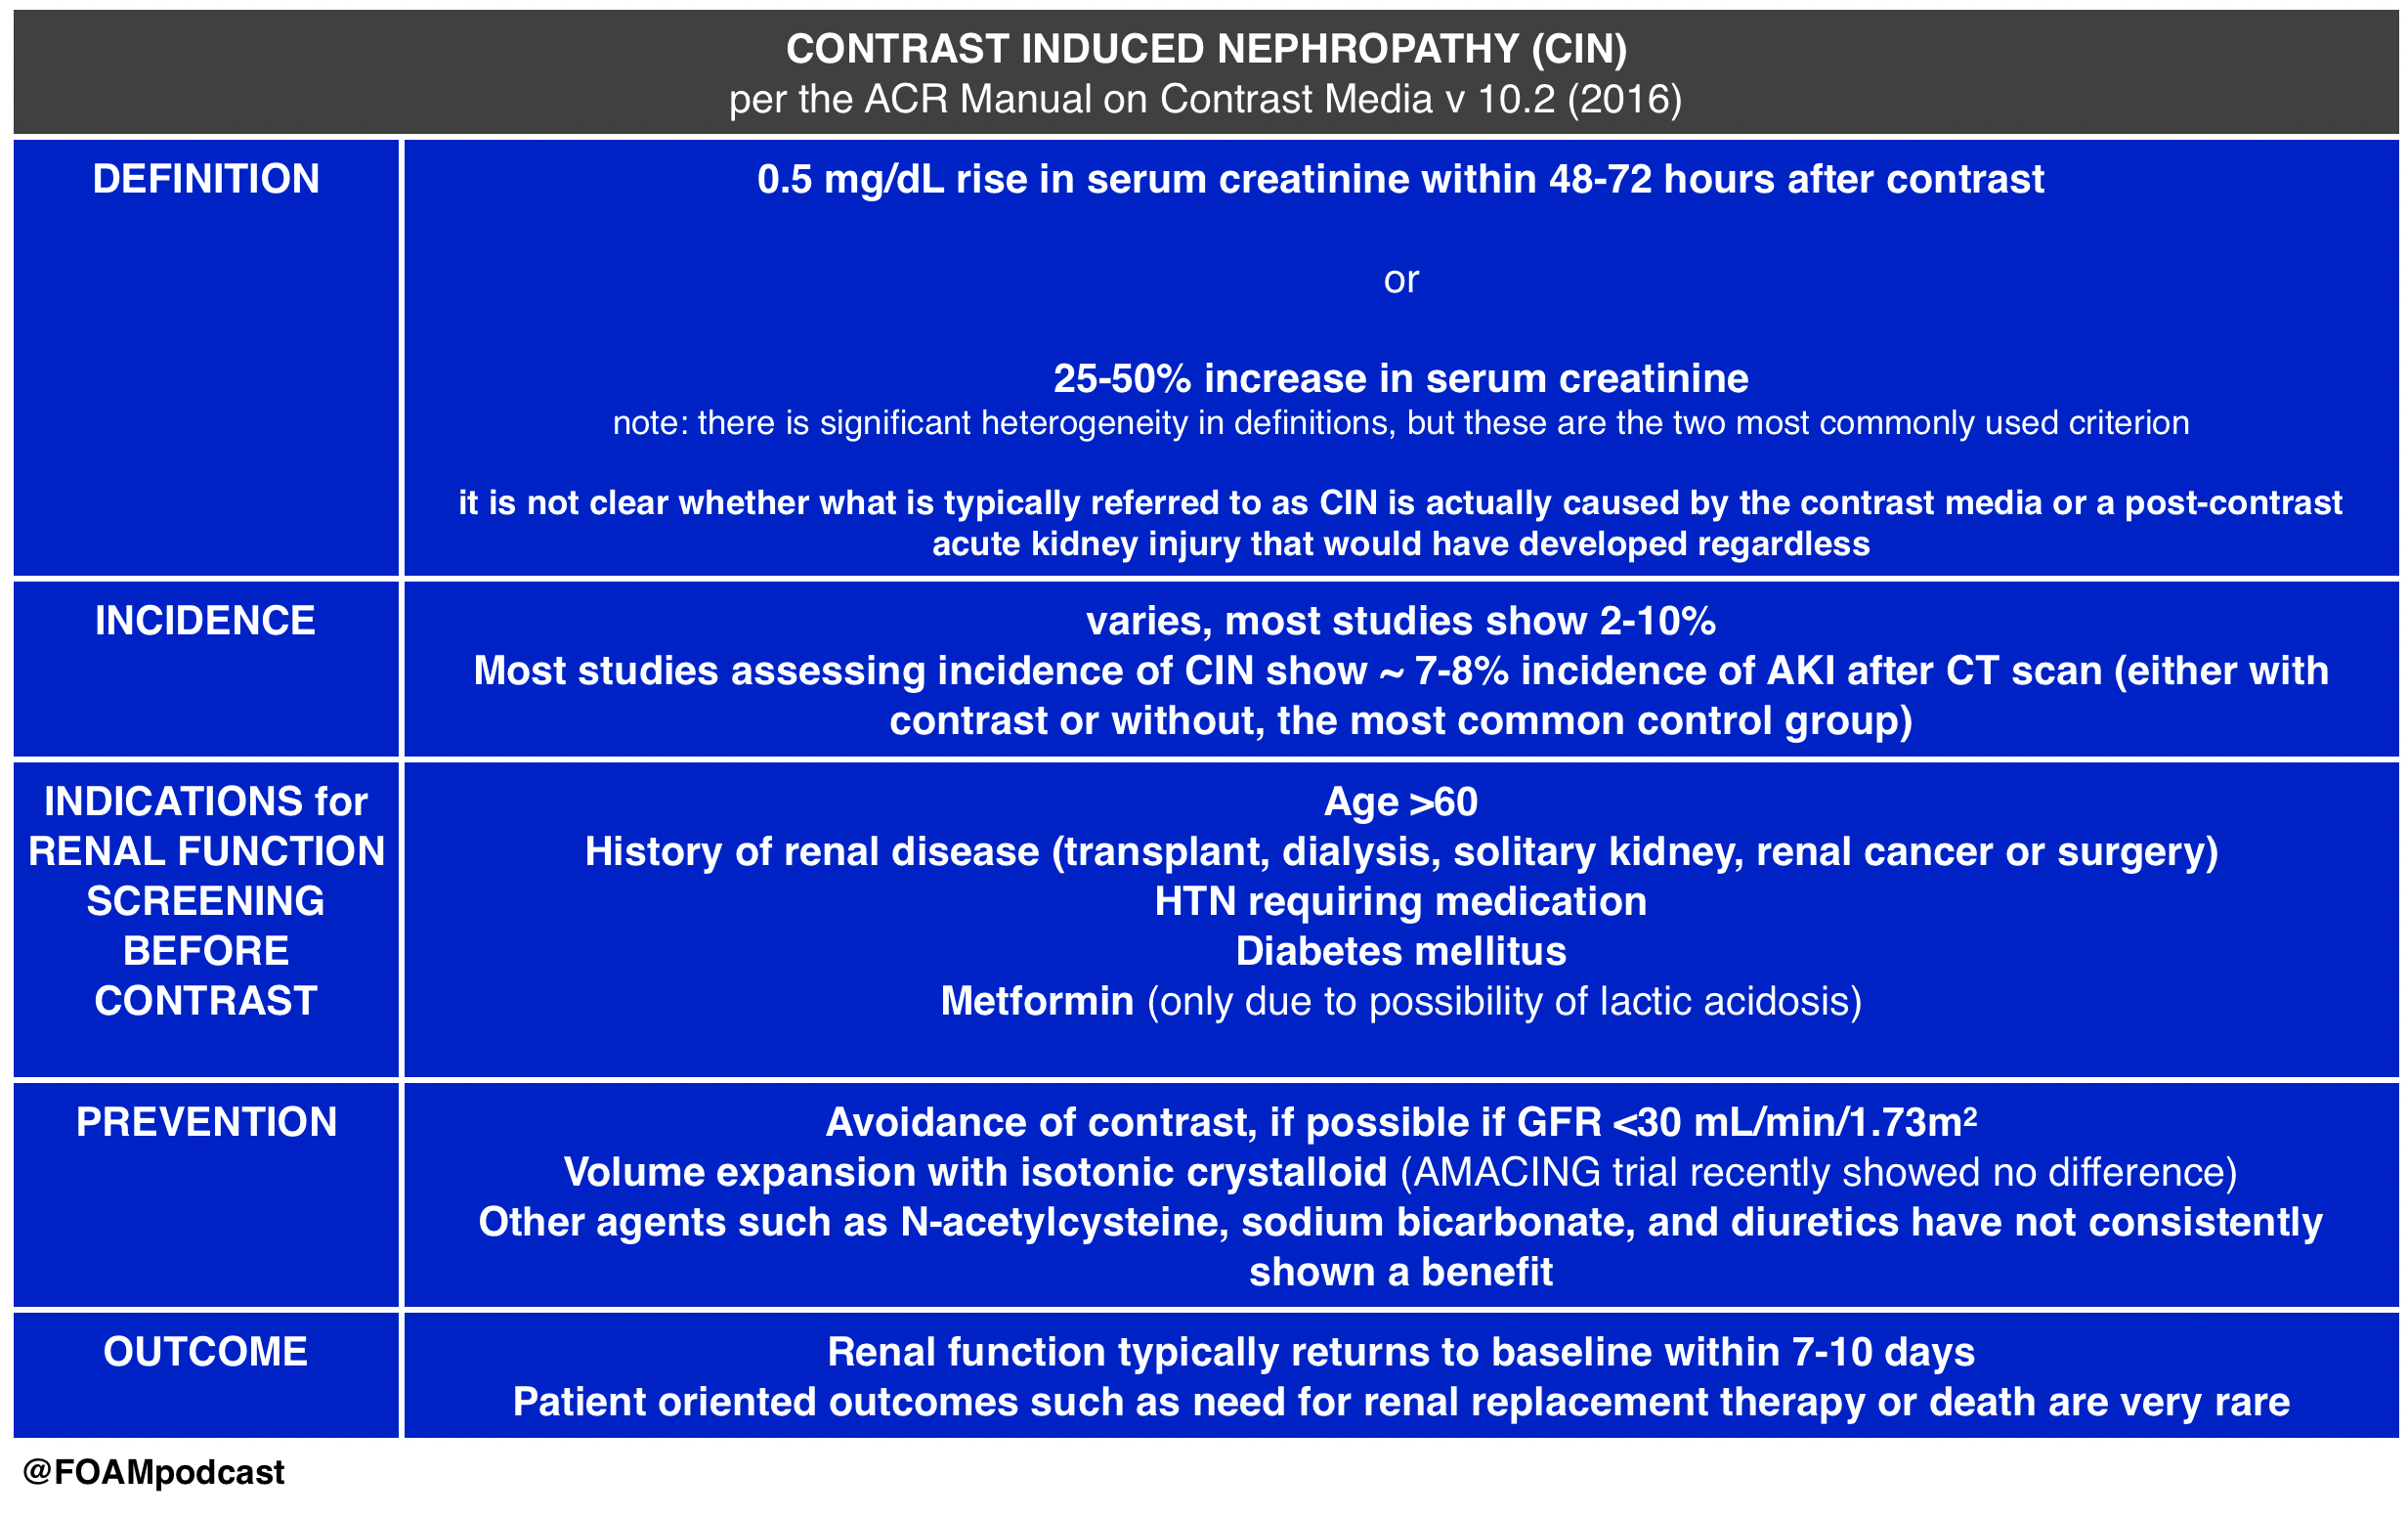 Episode 65 – Contrast-Induced Nephropathy and Genitourinary Trauma